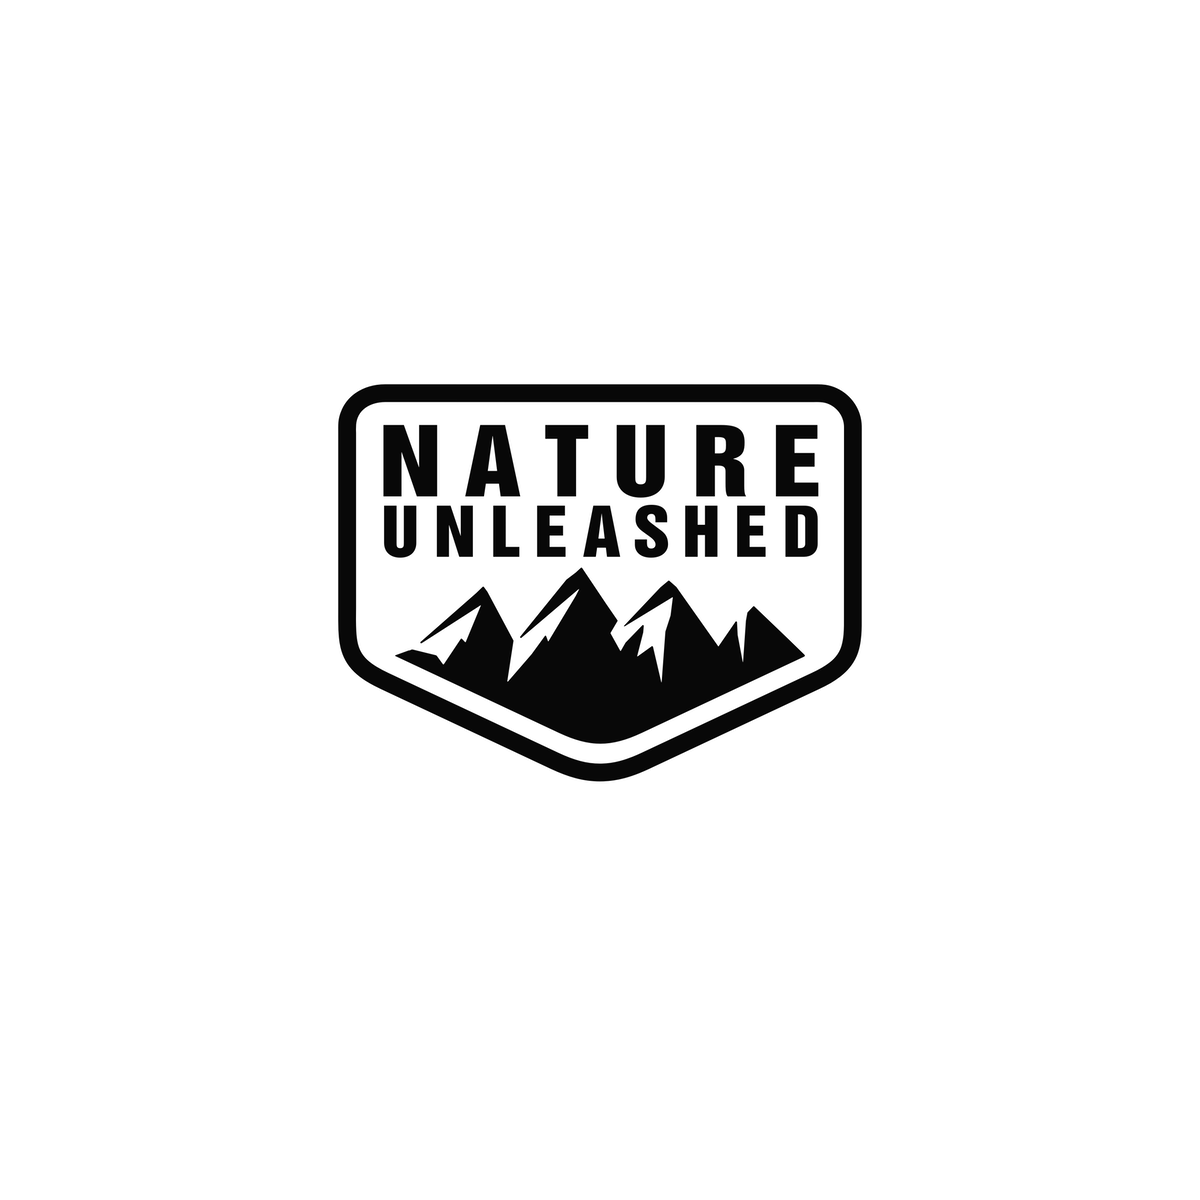 We need a striking logo for our new brand aimed at adventurous outdoor enthusiasts